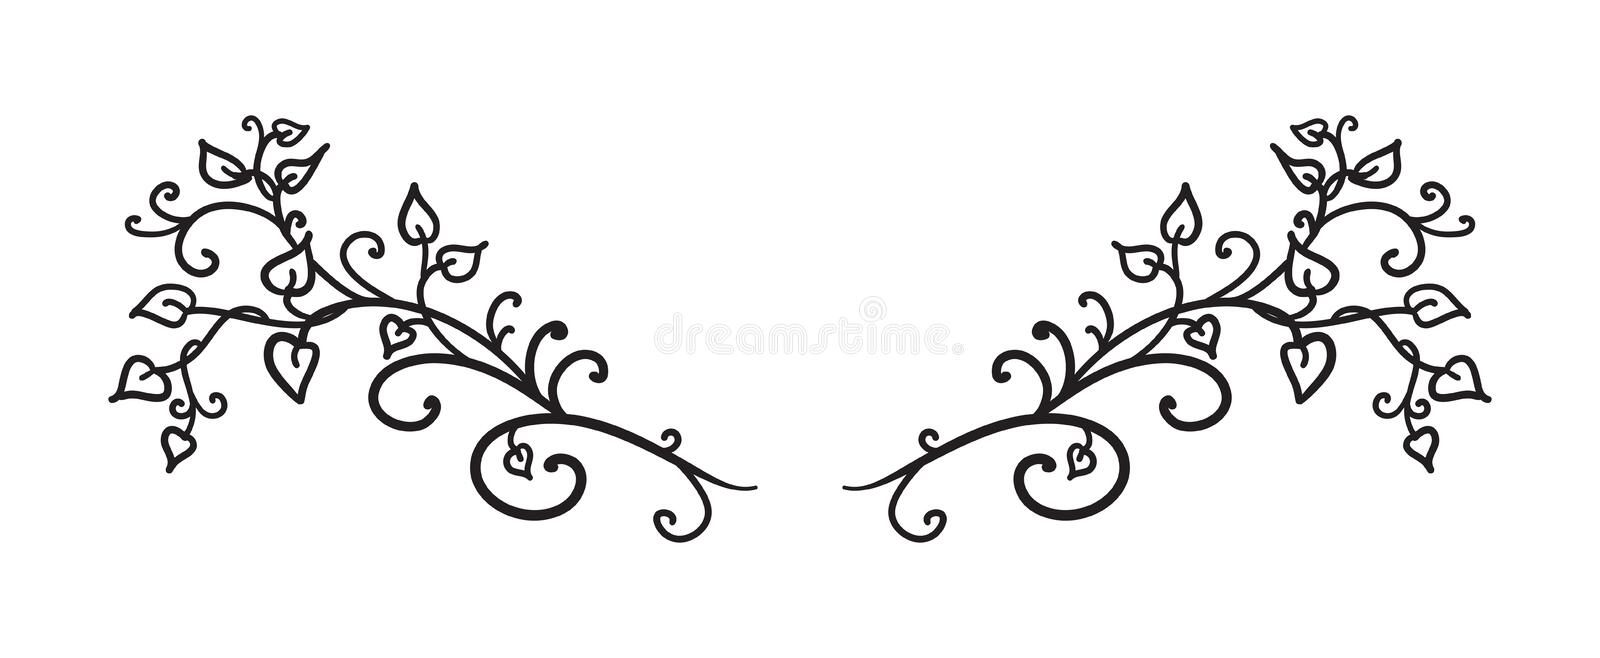 Hand drawn vines leaves curls and swirls vector in fancy design element paragraph or text divider, wedding design royalty free stock photos